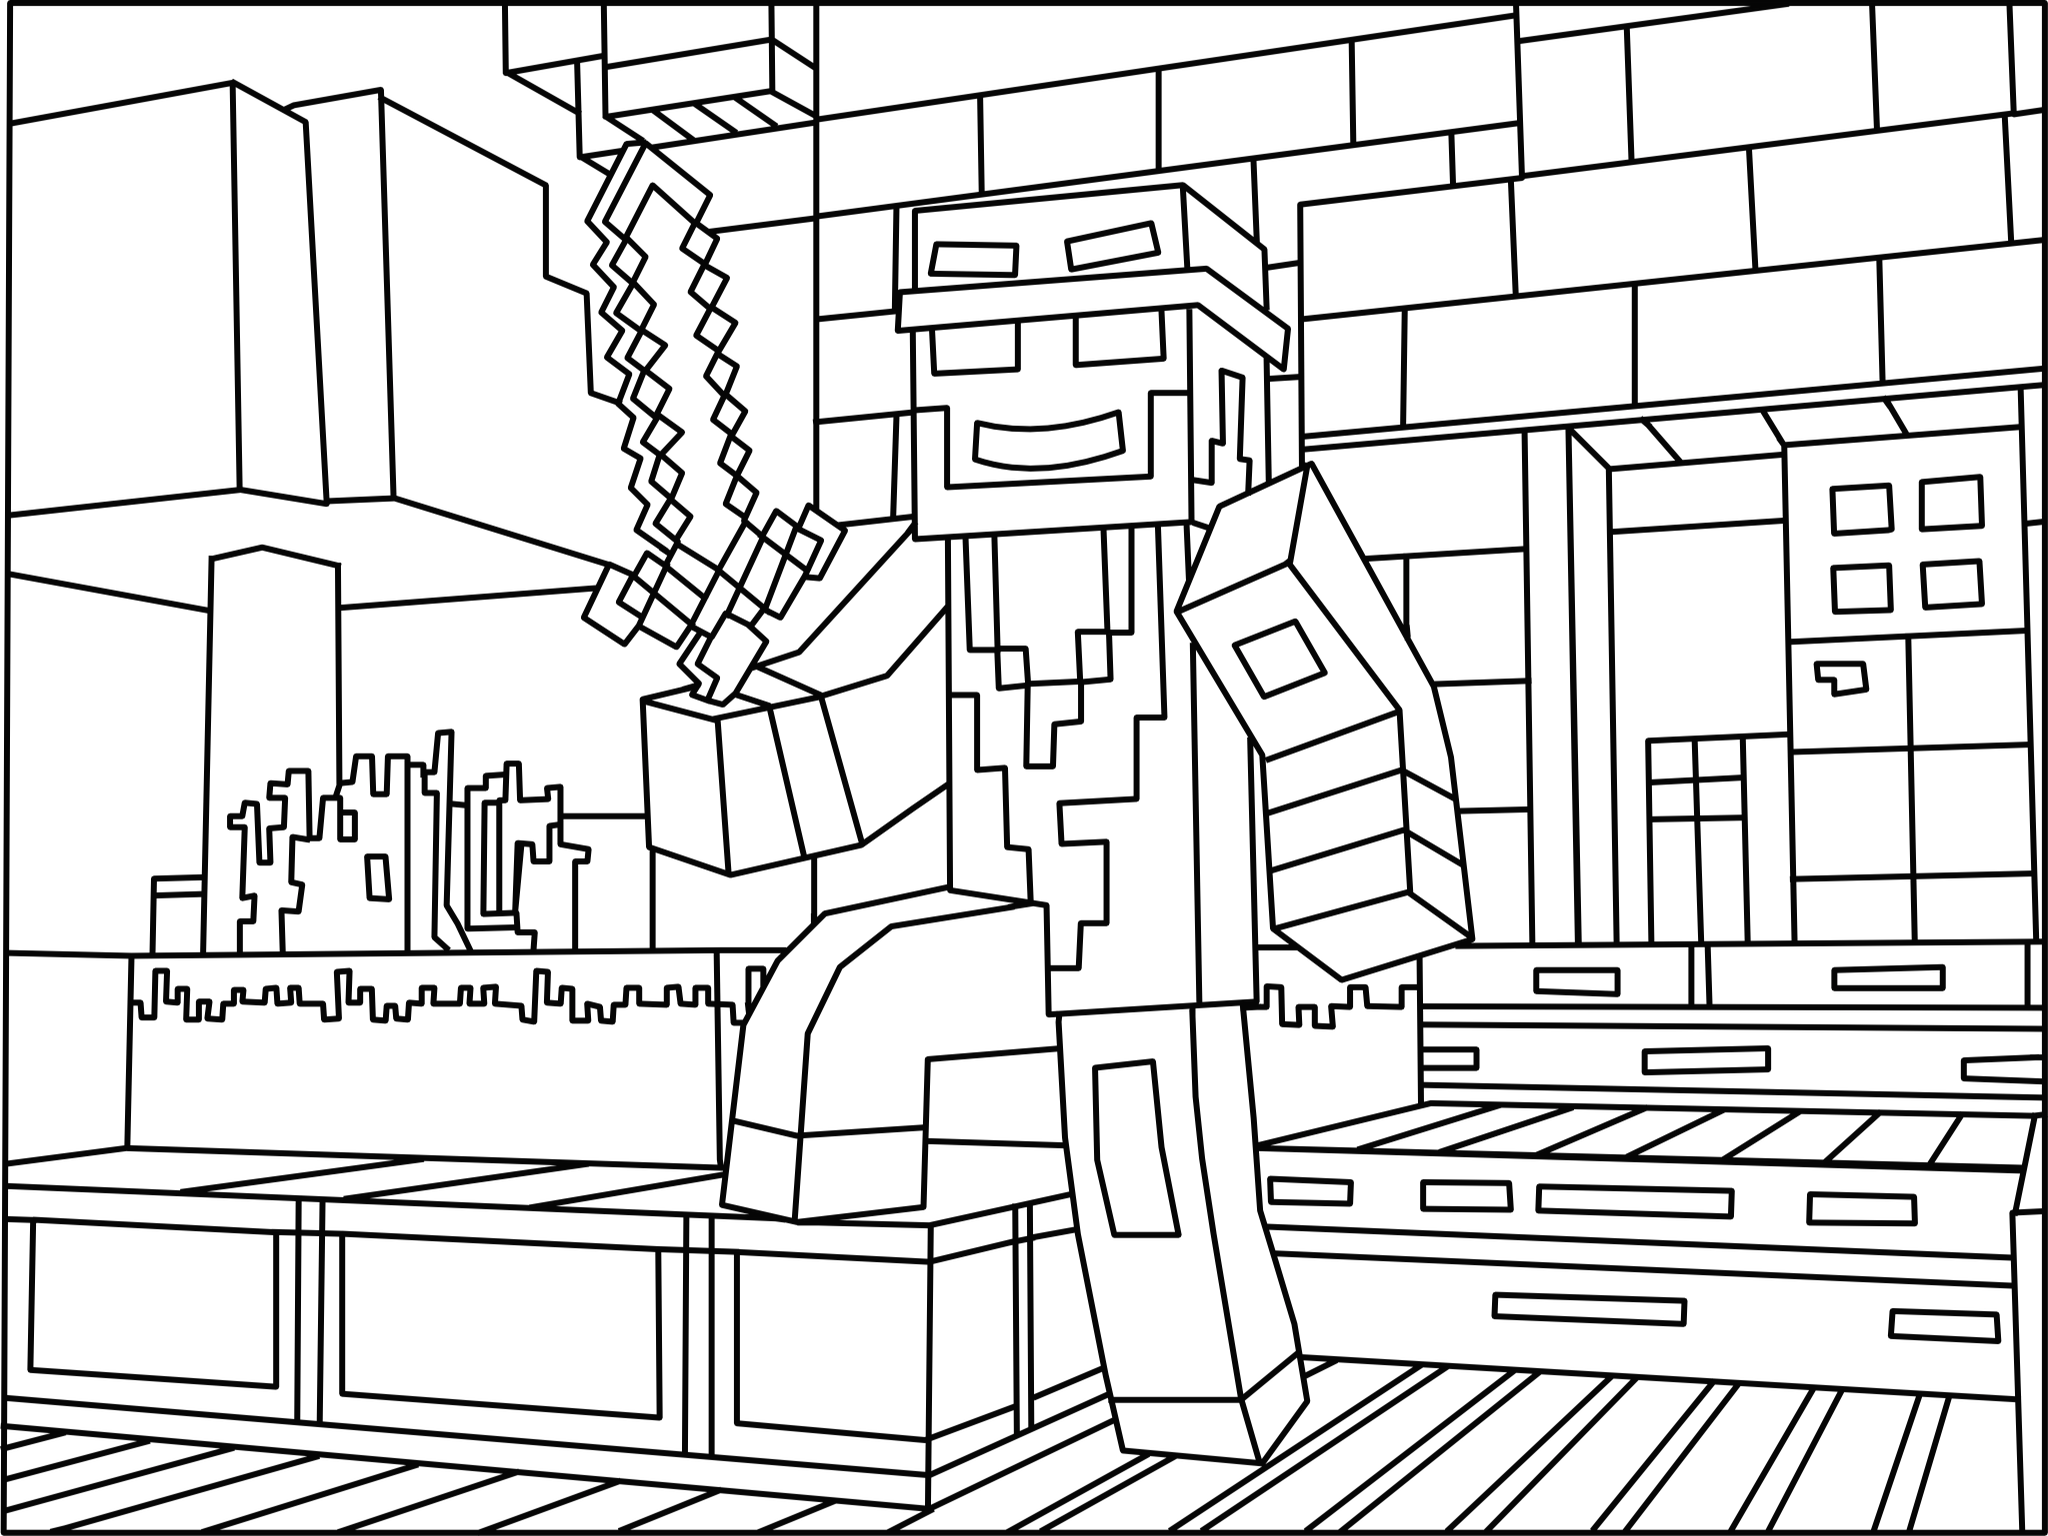 lego minecraft coloring pages minecraft ninja coloring page minecraft coloring pages lego coloring minecraft pages